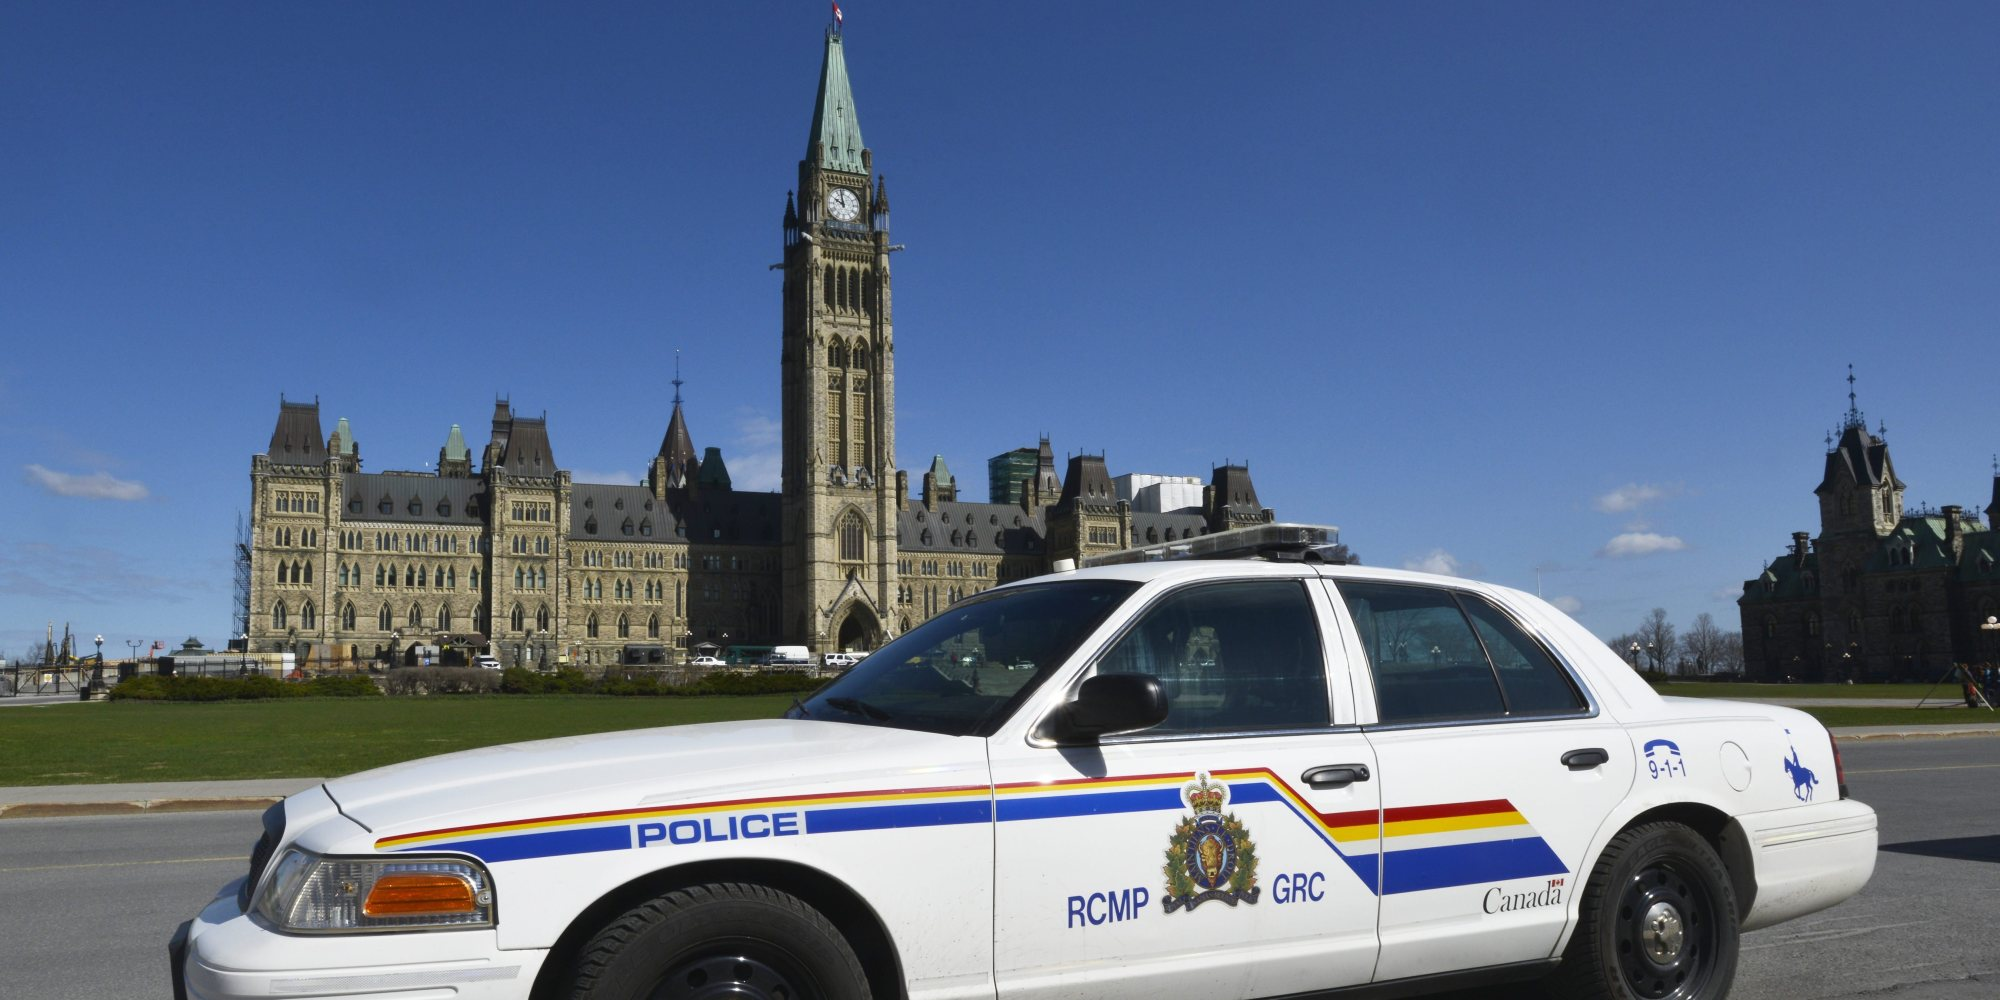 A RCMP cruiser sits parked on Parliament Hill in Ottawa on Tuesday, April 28, 2015. THE CANADIAN PRESS IMAGES/Matthew Usherwood